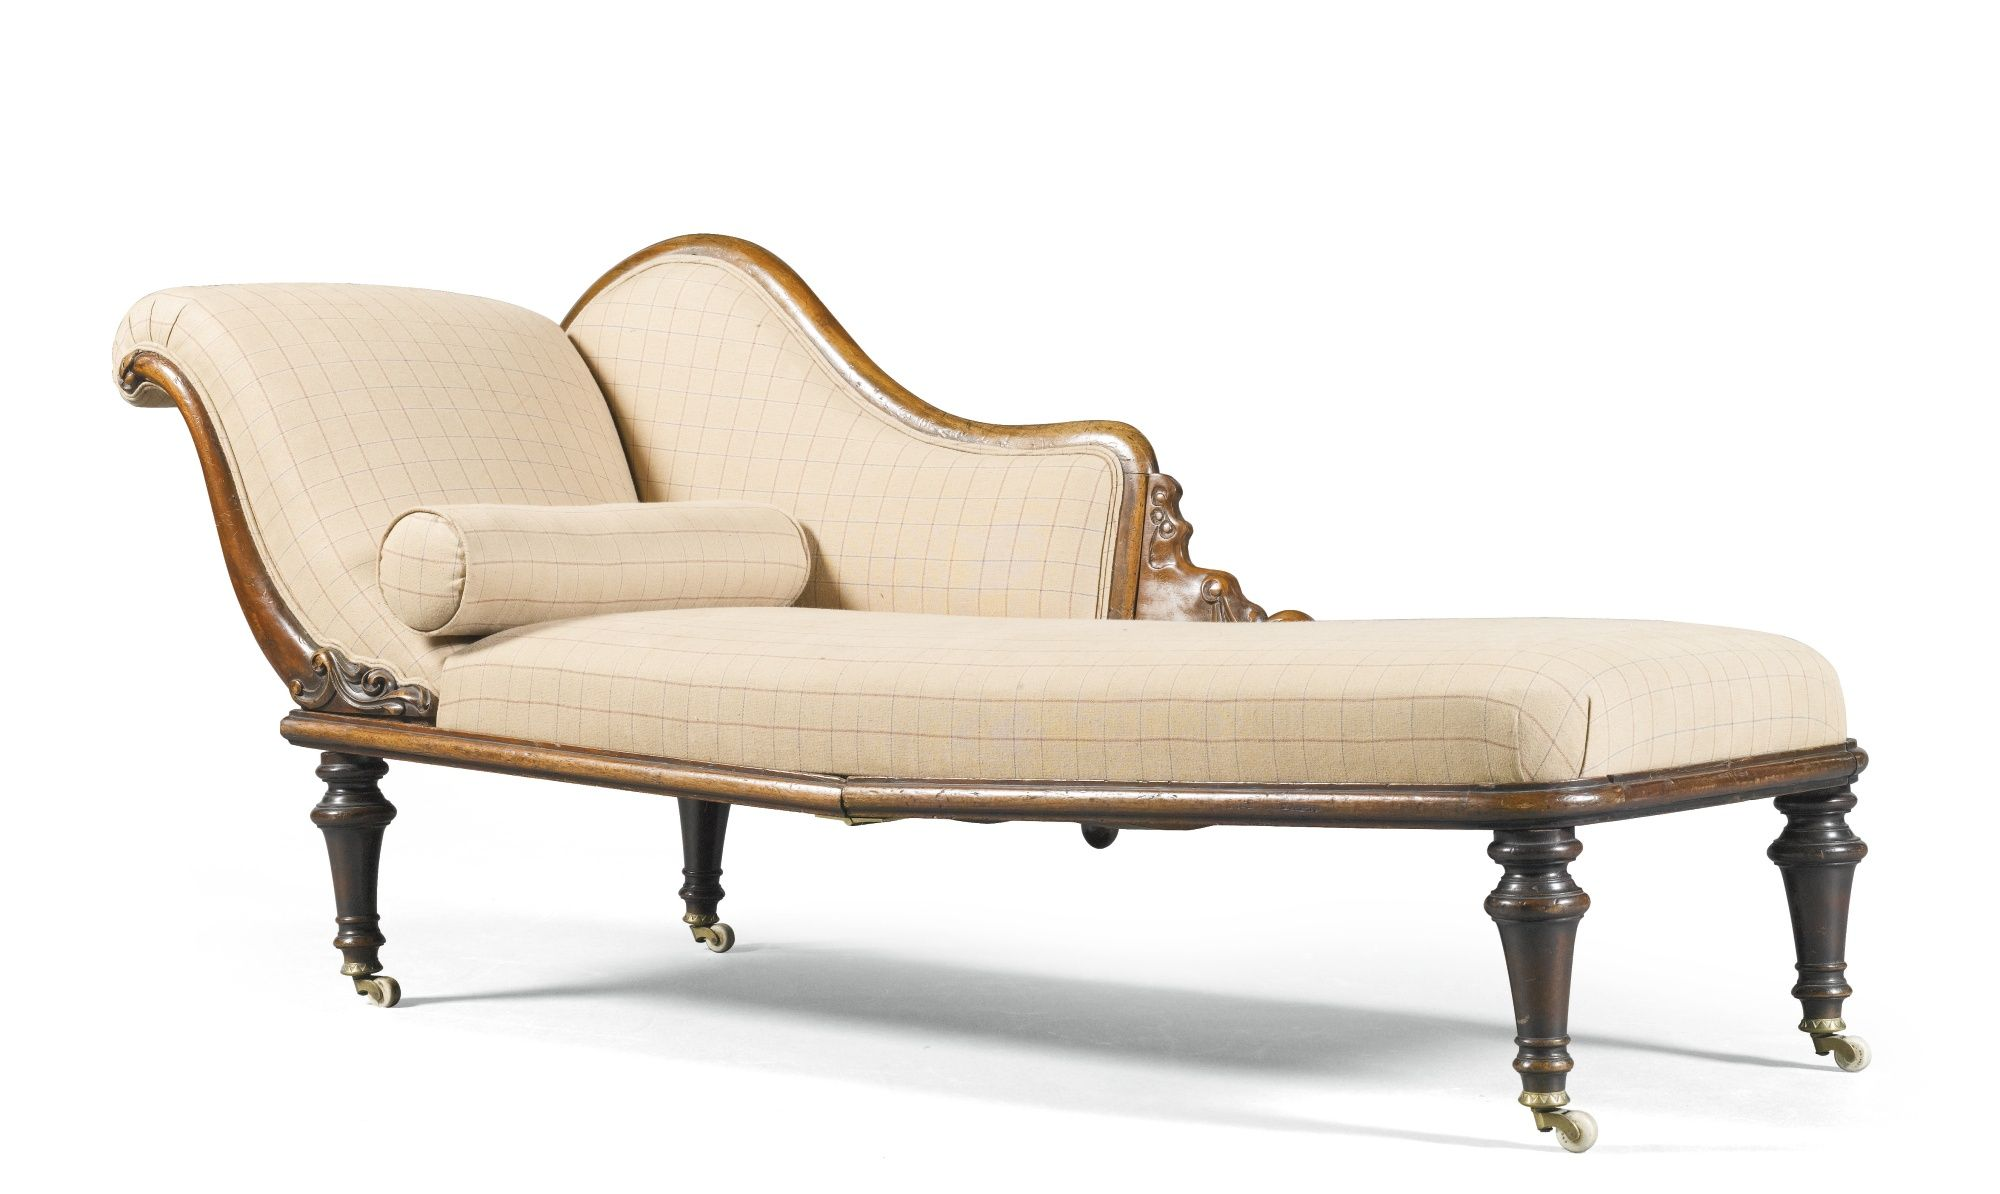 CAMPAIGN DAY BED walnut, dismantling and then folding into ... on chaise recliner chair, chaise furniture, chaise sofa sleeper,